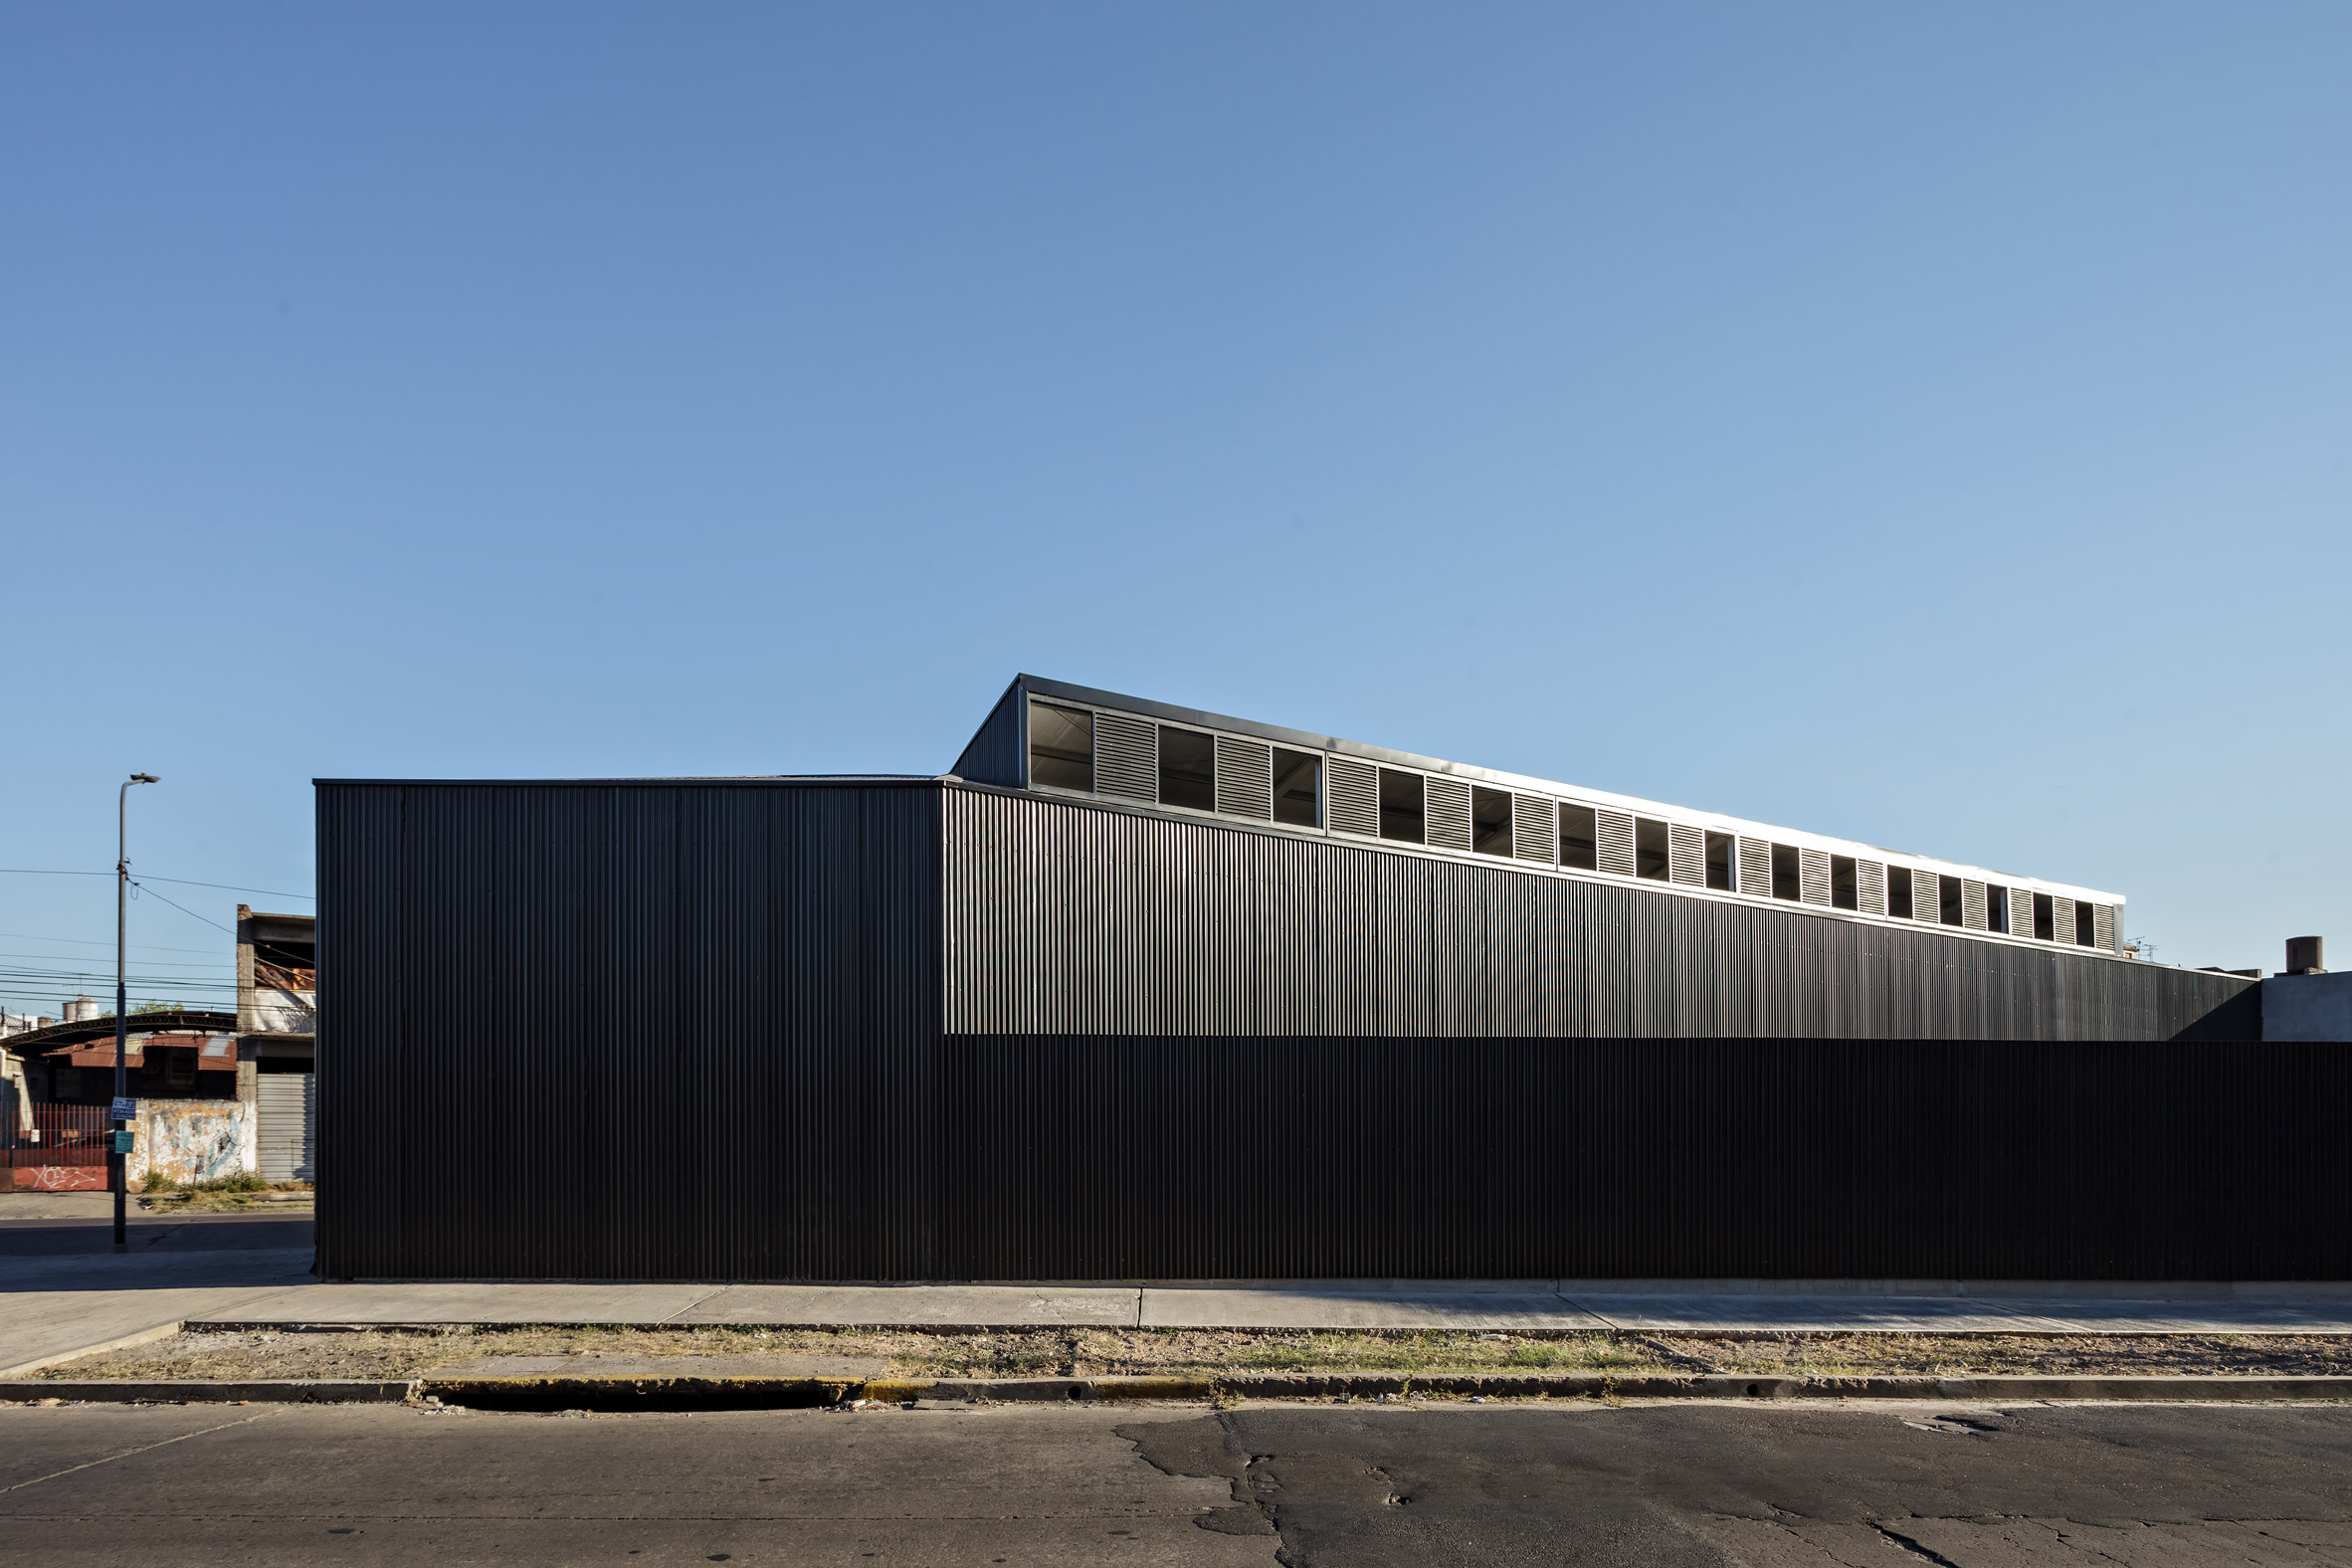 Minimalist black warehouse by Moarqs occupies triangular site outside Buenos Aires